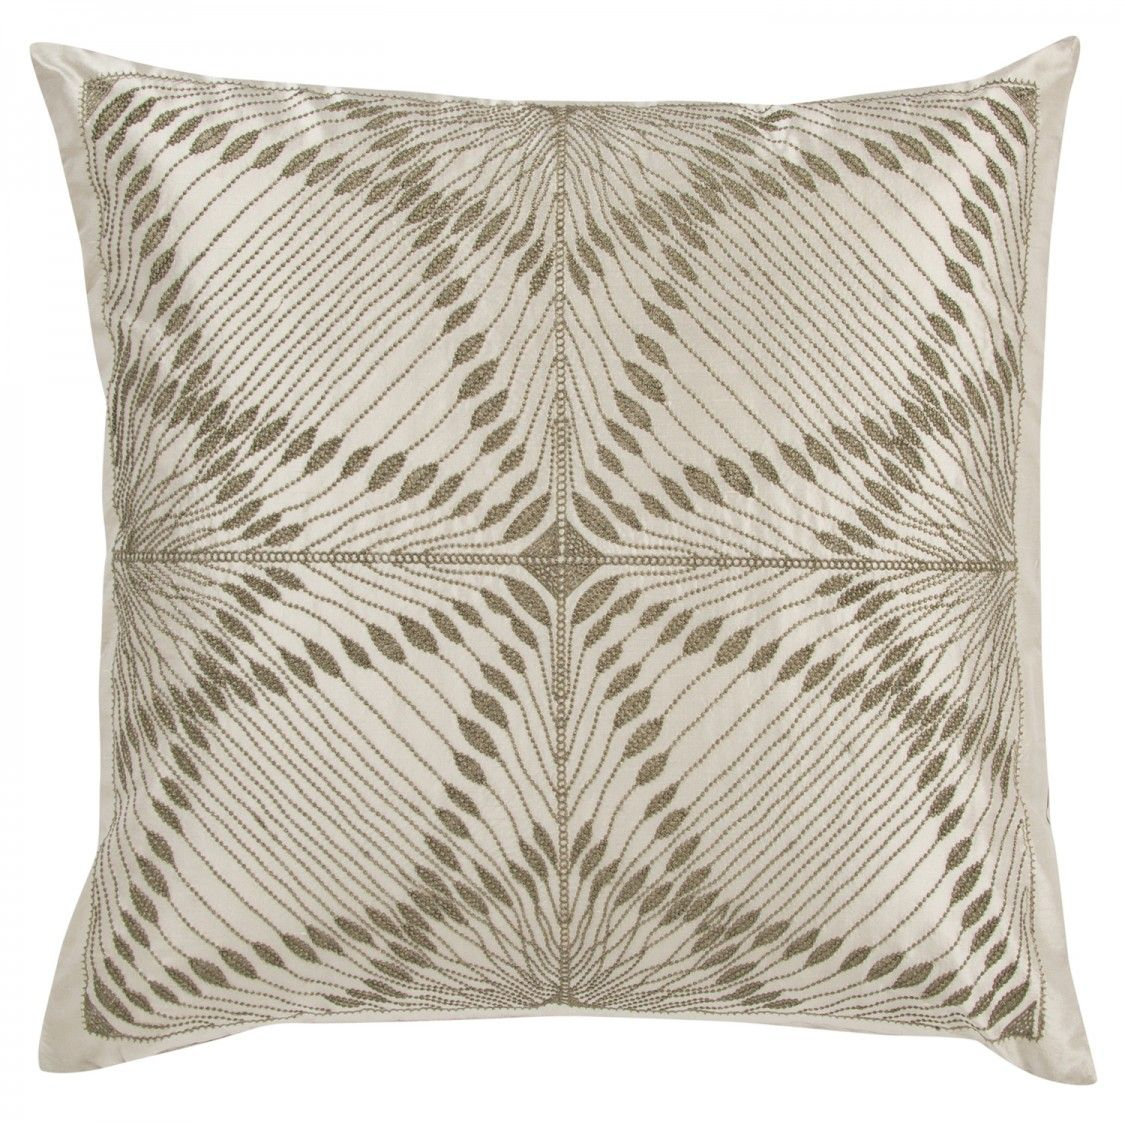 Luxury Glass Beads Decorative Pillow In Silver By Frette Pillows